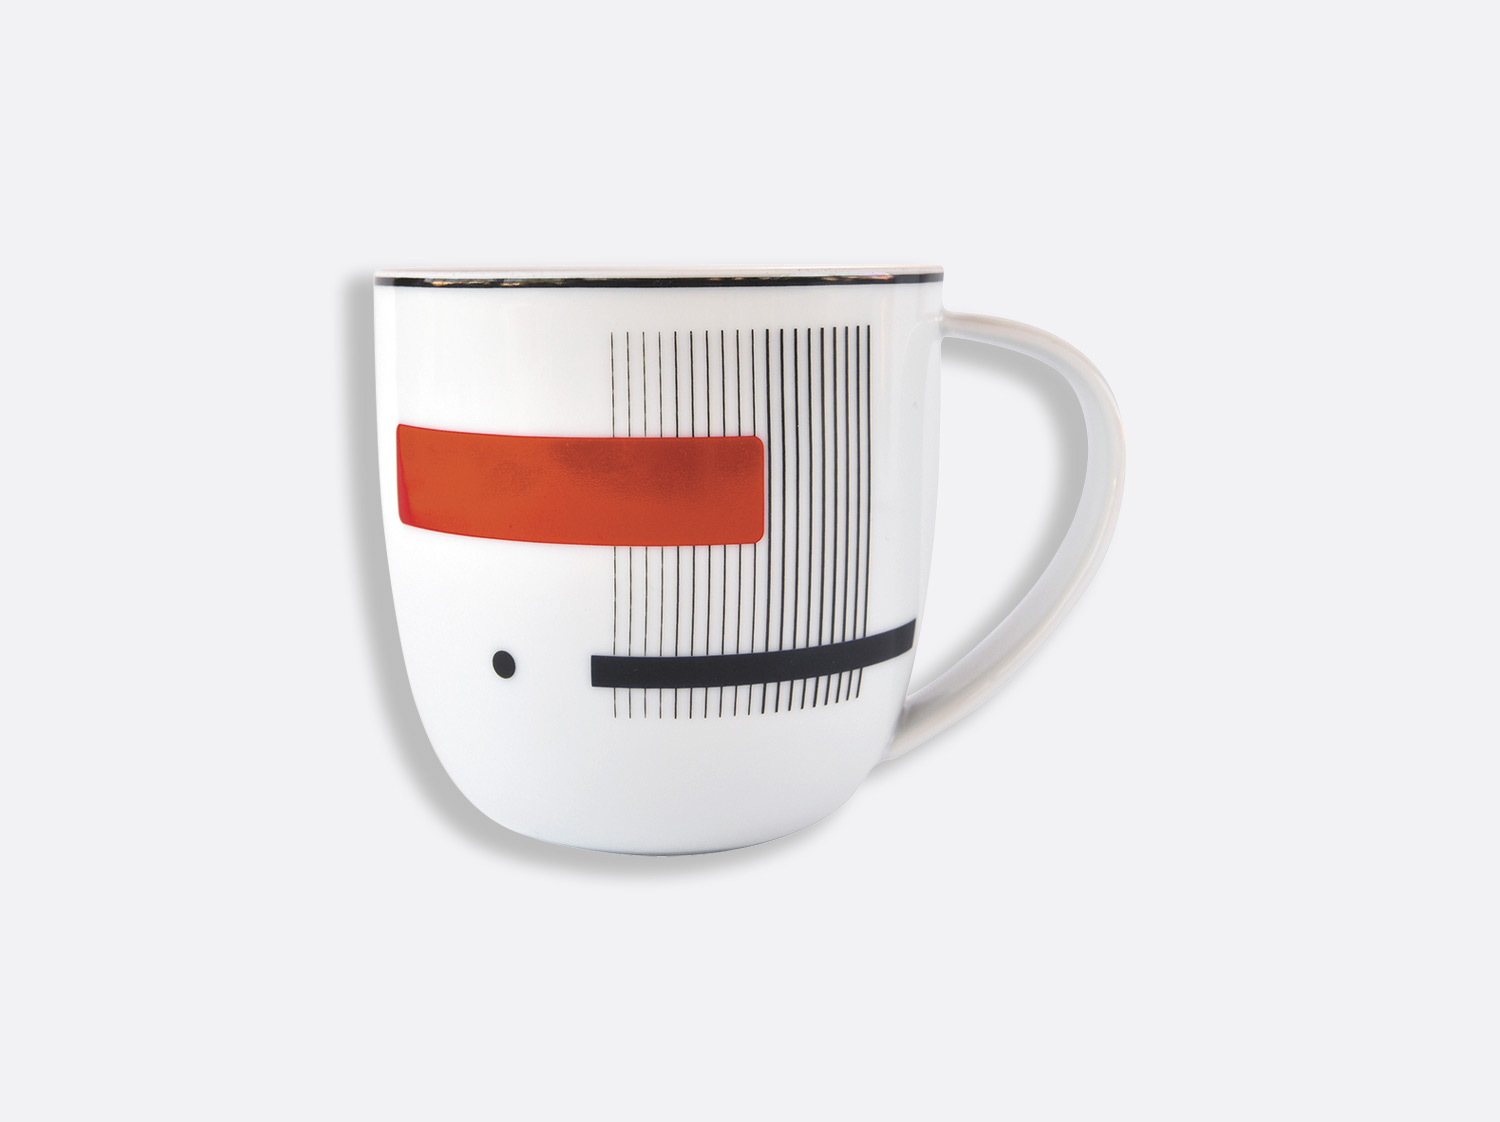 Mug 35 cl - A l'unité en porcelaine de la collection OSCAR Bernardaud